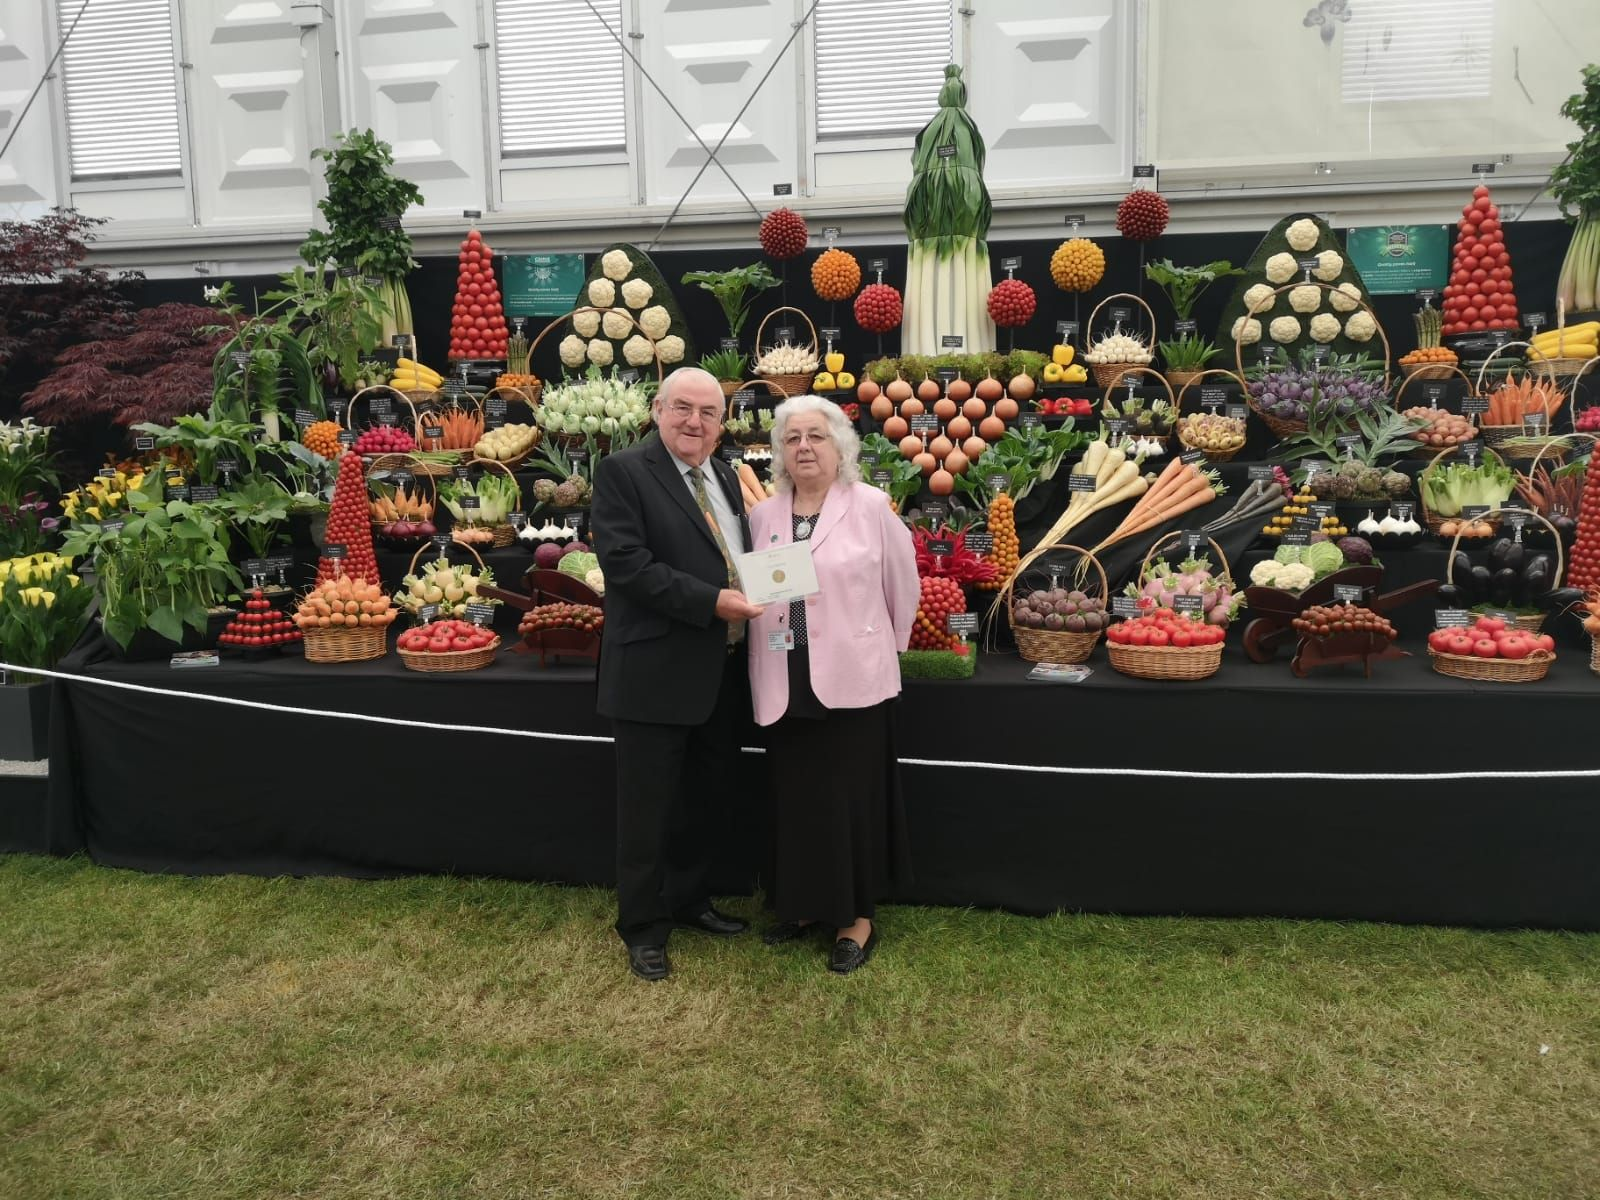 5 secrets to growing award-winning vegetables, reveals Chelsea Flower Show champion vegetable grower